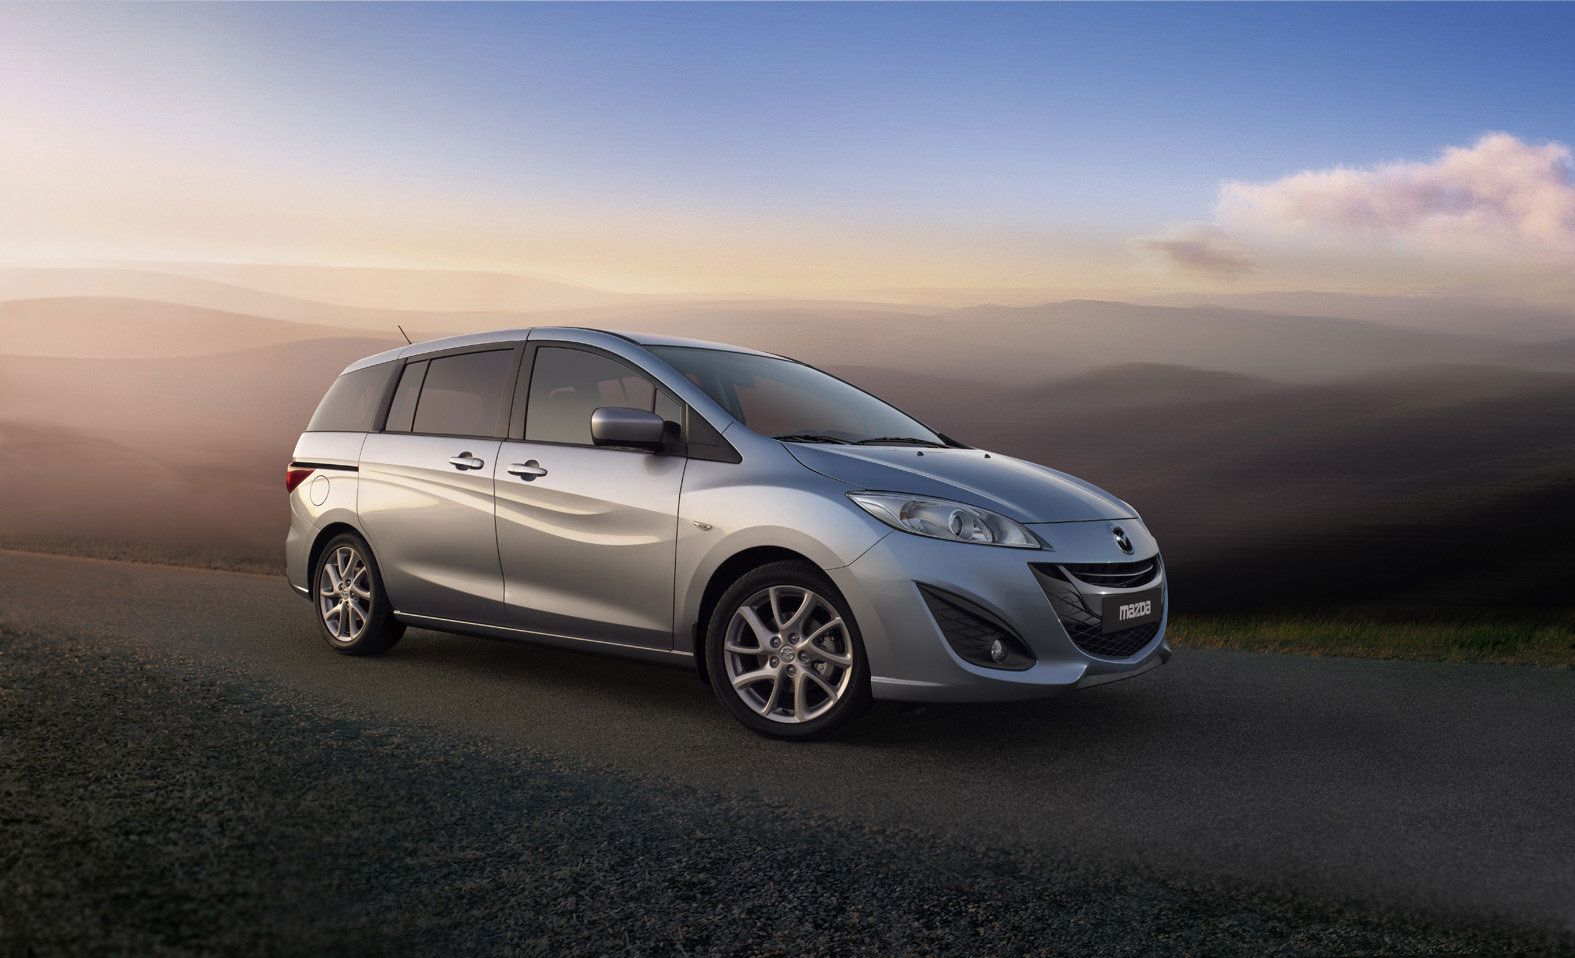 2011 Mazda Mazda5 Review Ratings Specs Prices And Photos The 5 Sport Fuse Box Car Connection